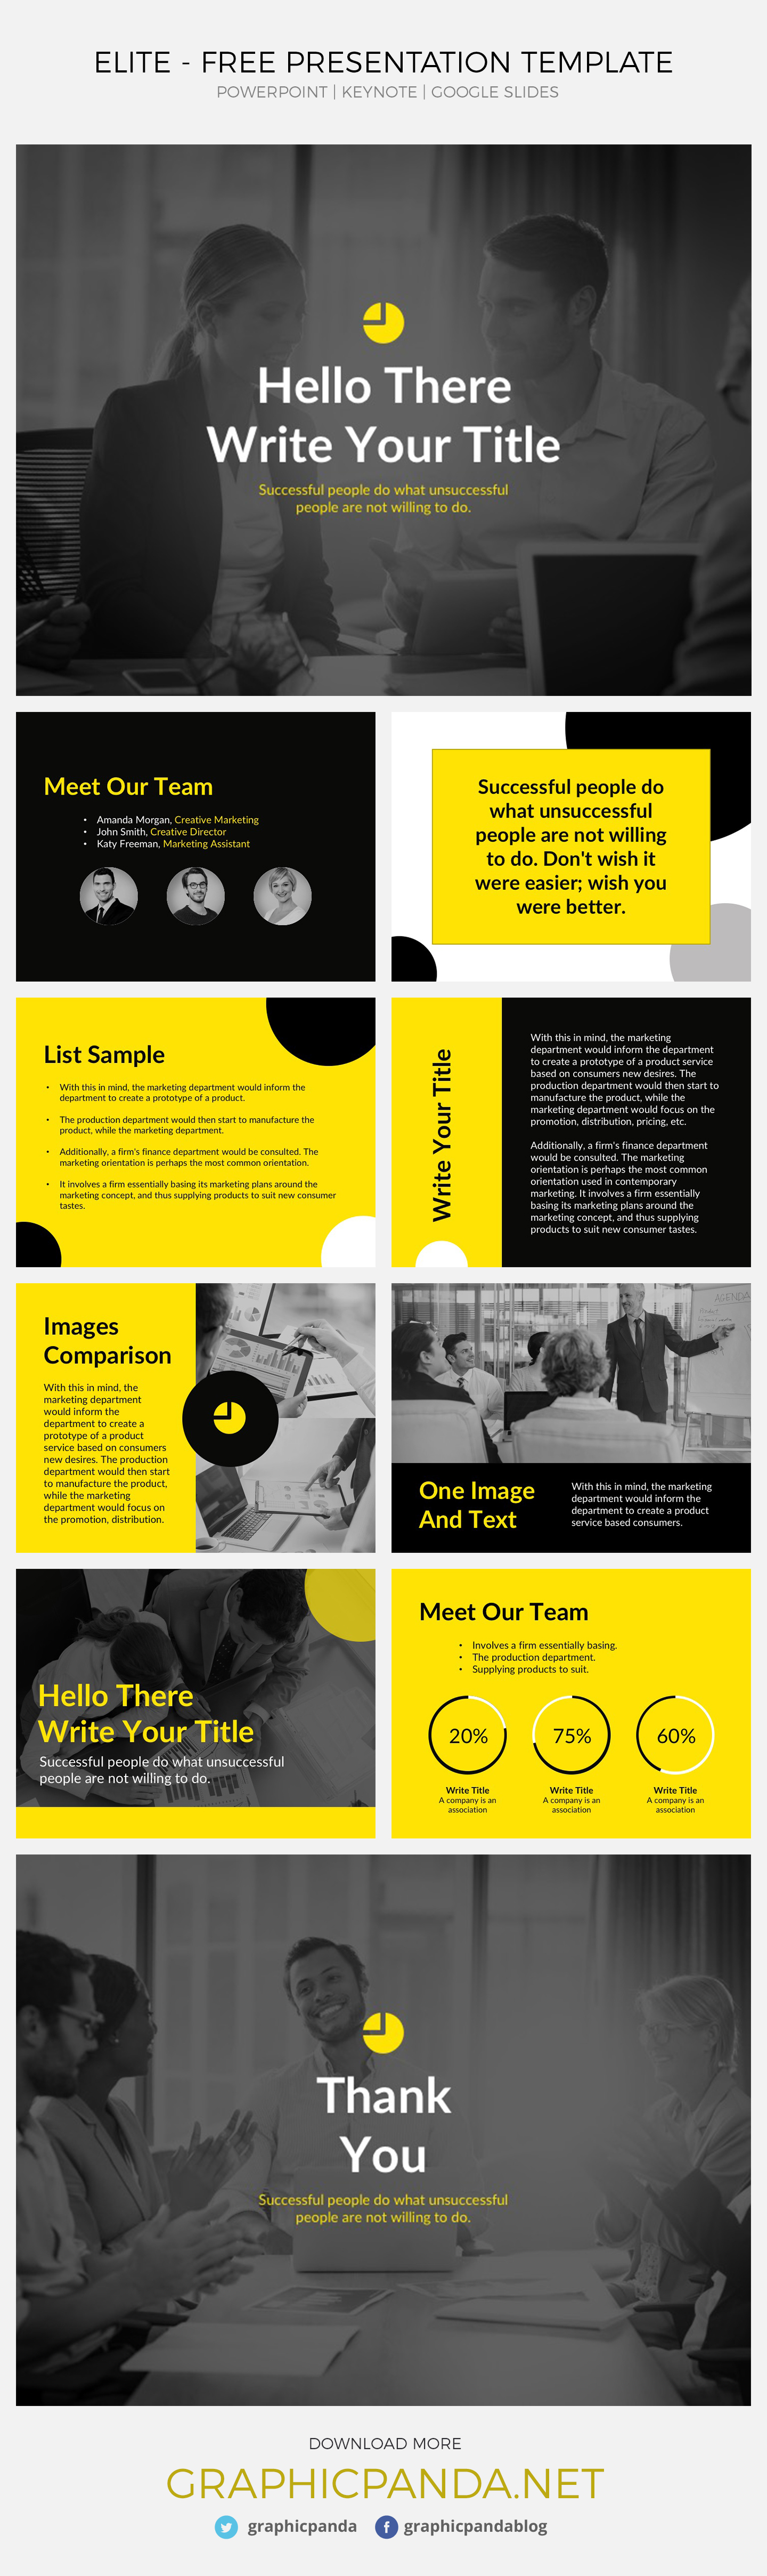 Top 69 Best Free Keynote Templates (Updated March 2019)